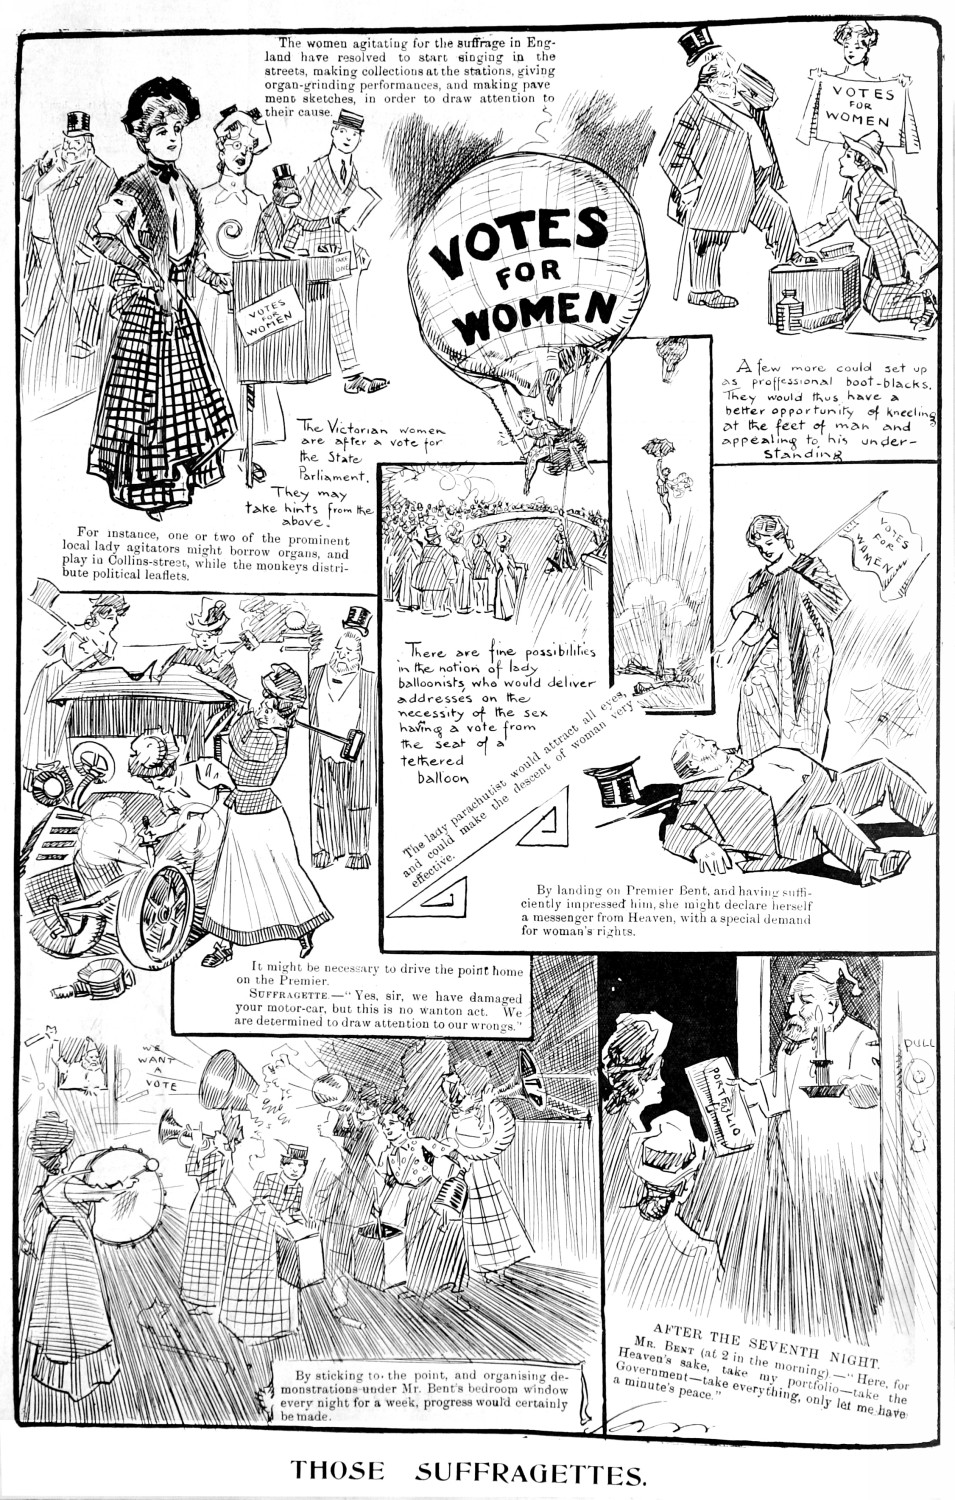 1908-02-27 Melb Punch p298 Those Suffragettes